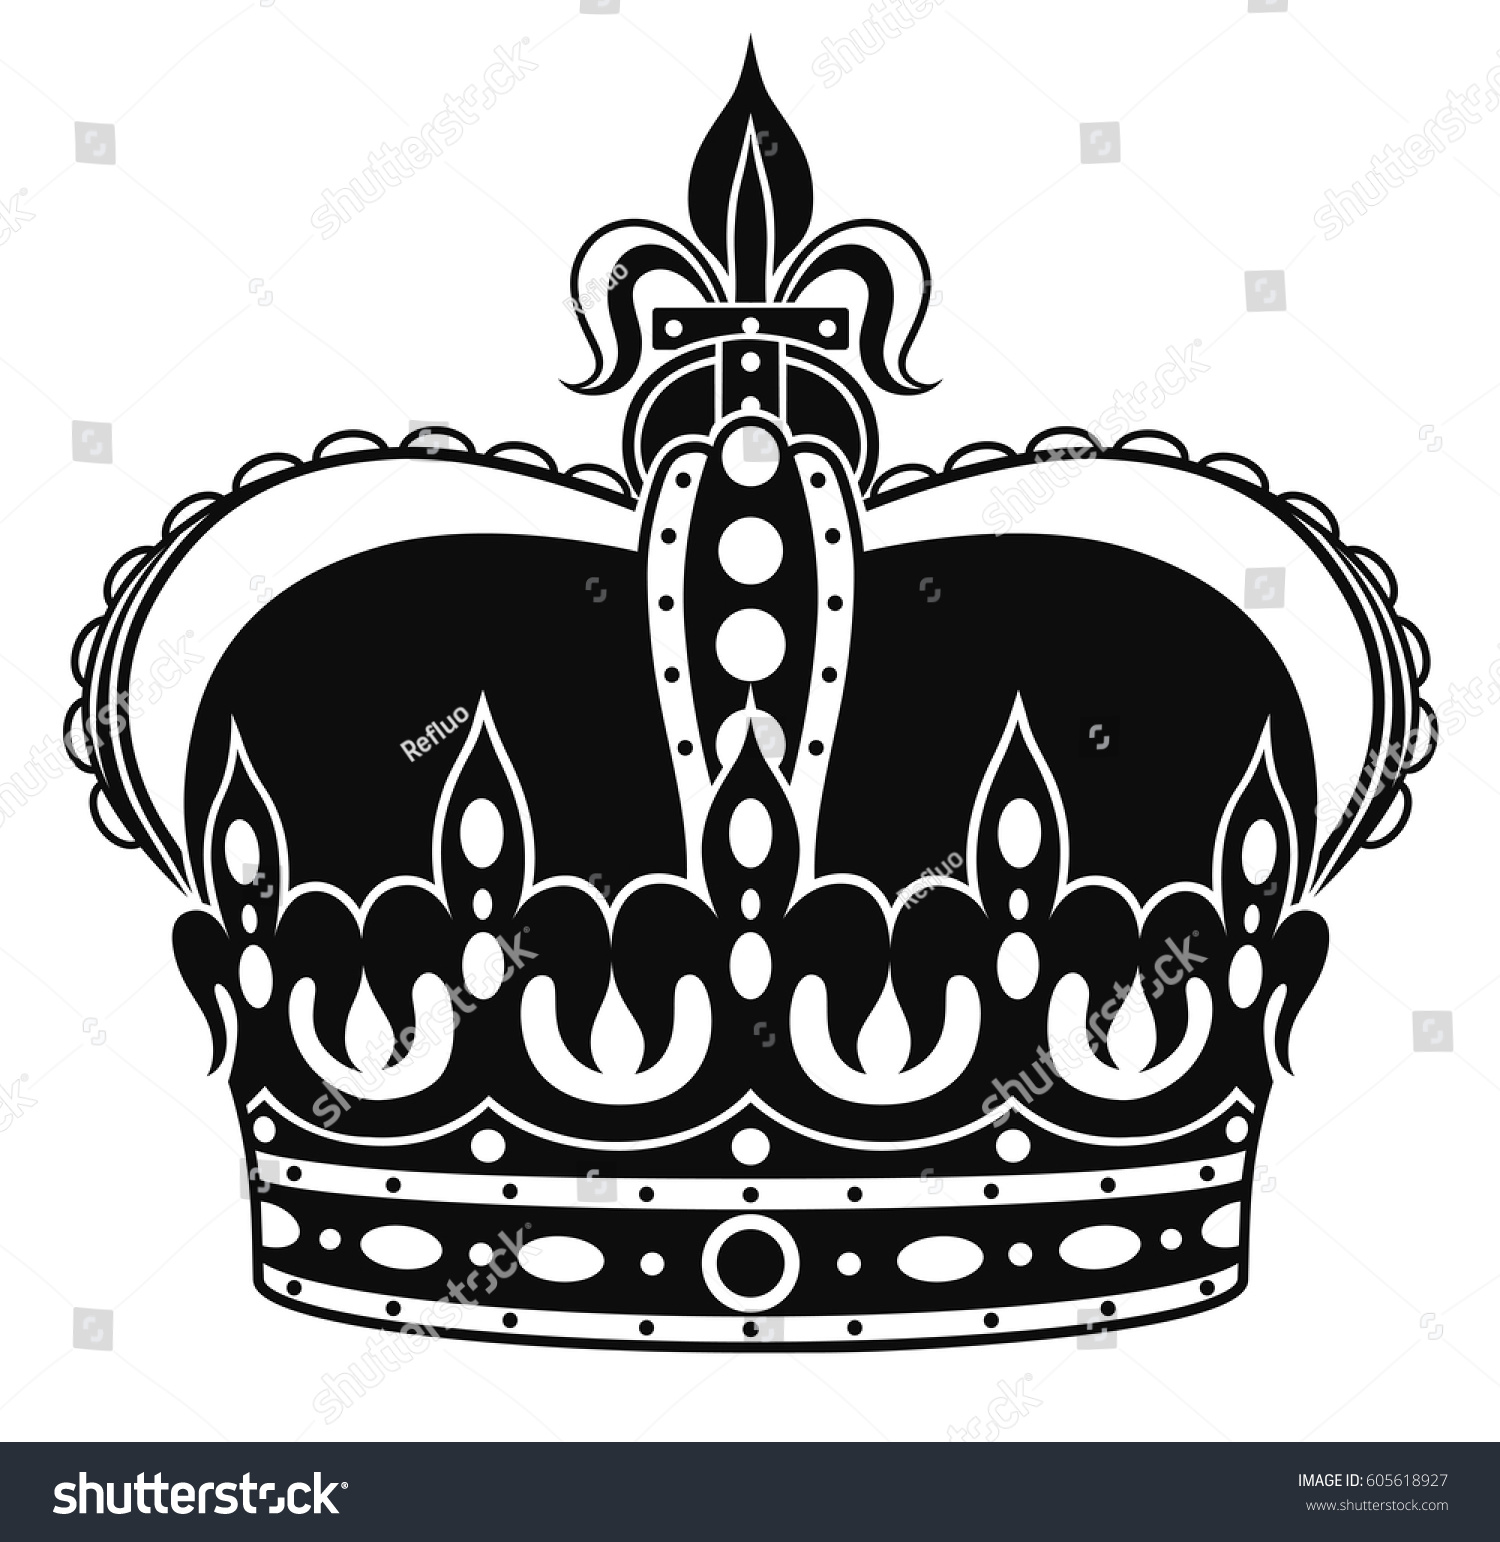 new product 75488 062f5 king crown black and white